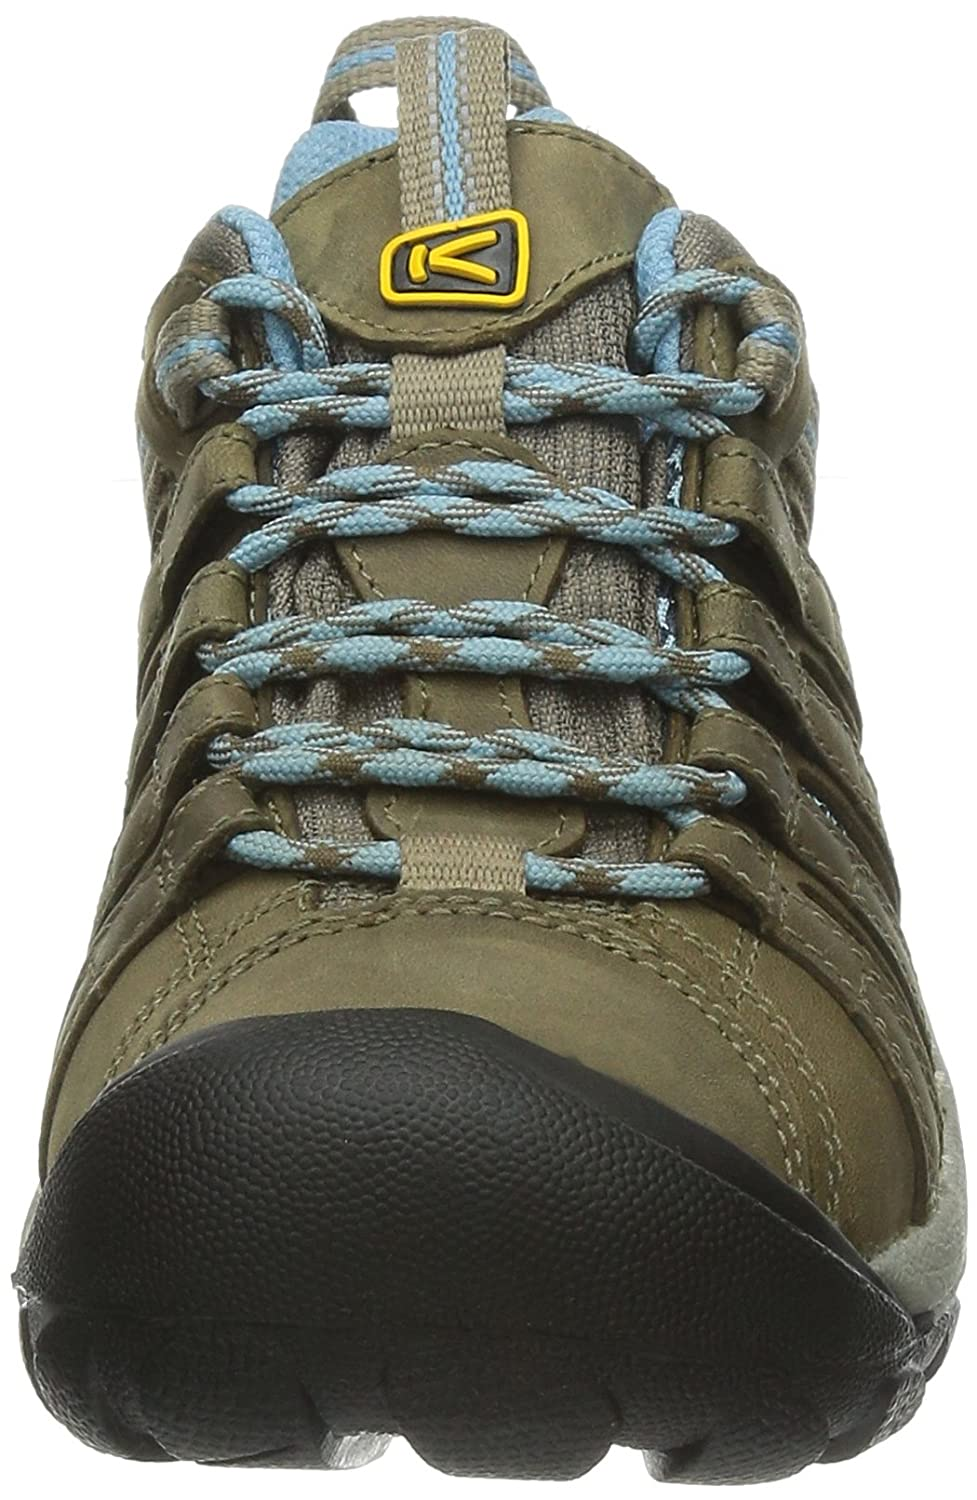 KEEN Women's Voyageur Hiking Shoe B00HGAGBNW 8.5 B(M) US|Brindle/Alaskan Blue